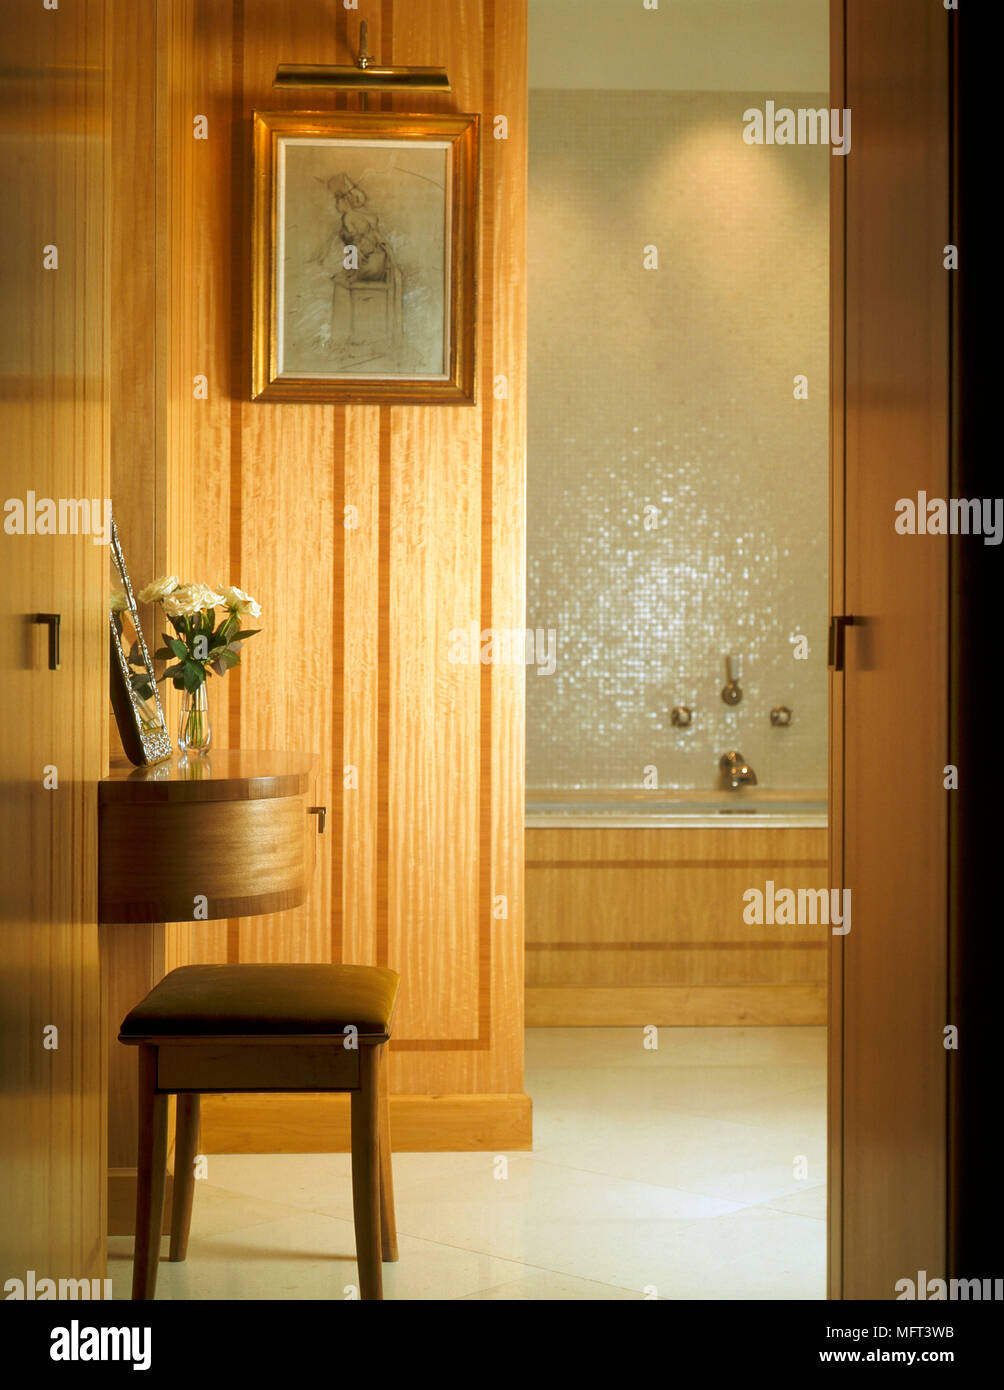 A View Through Open Door Into Of A Modern Bathroom With Wood Panelling Wall  Mounted Dressing Table Stool Bath